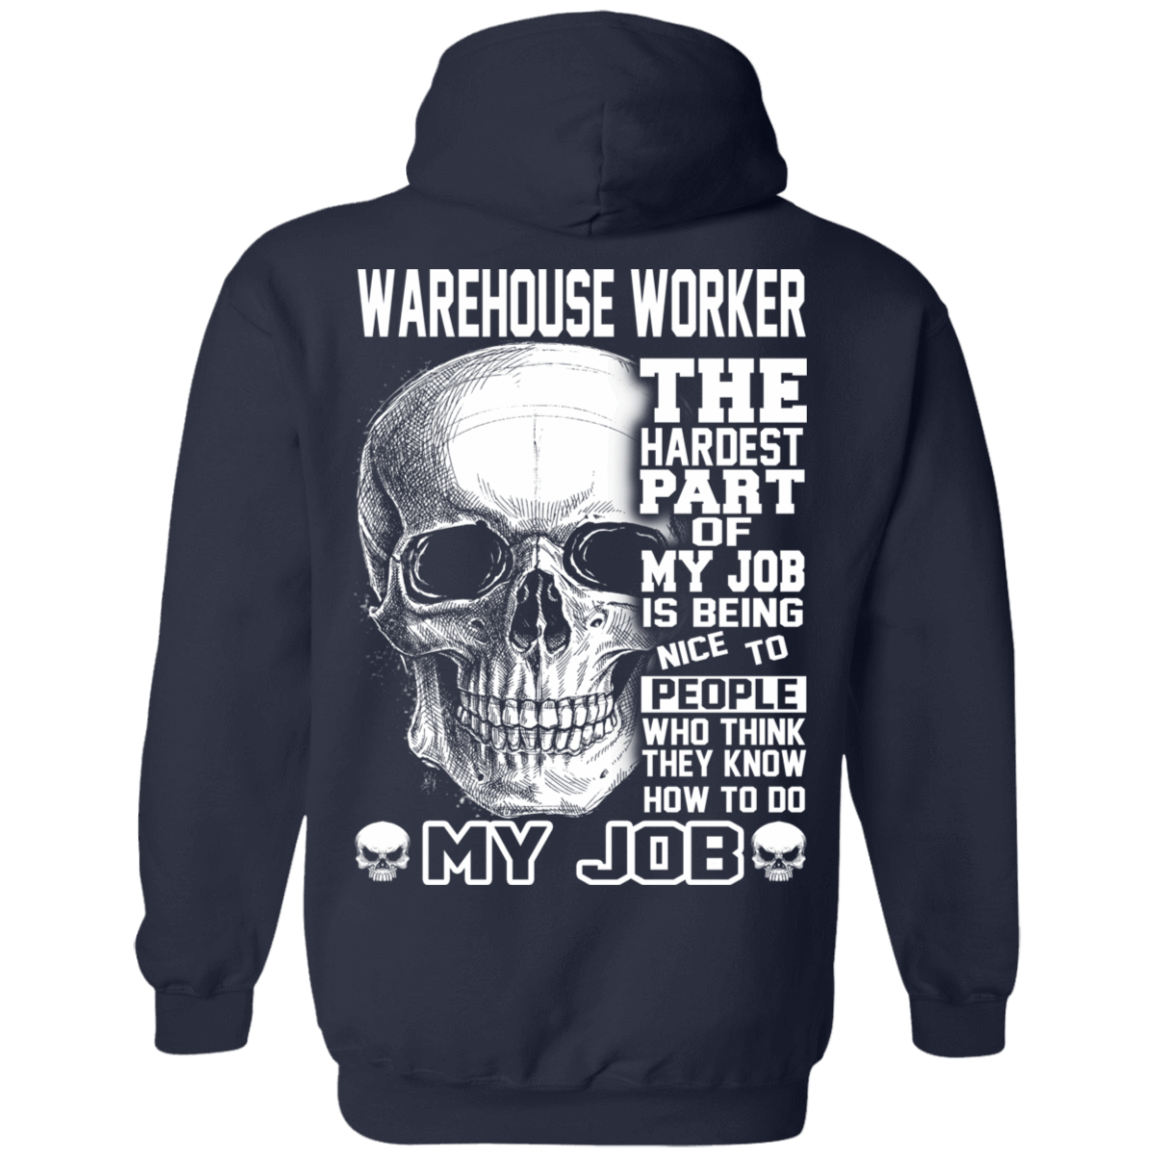 Warehouse Worker The Hardest Part Of My Job 541-4742-71609201-23135 - Tee Ript